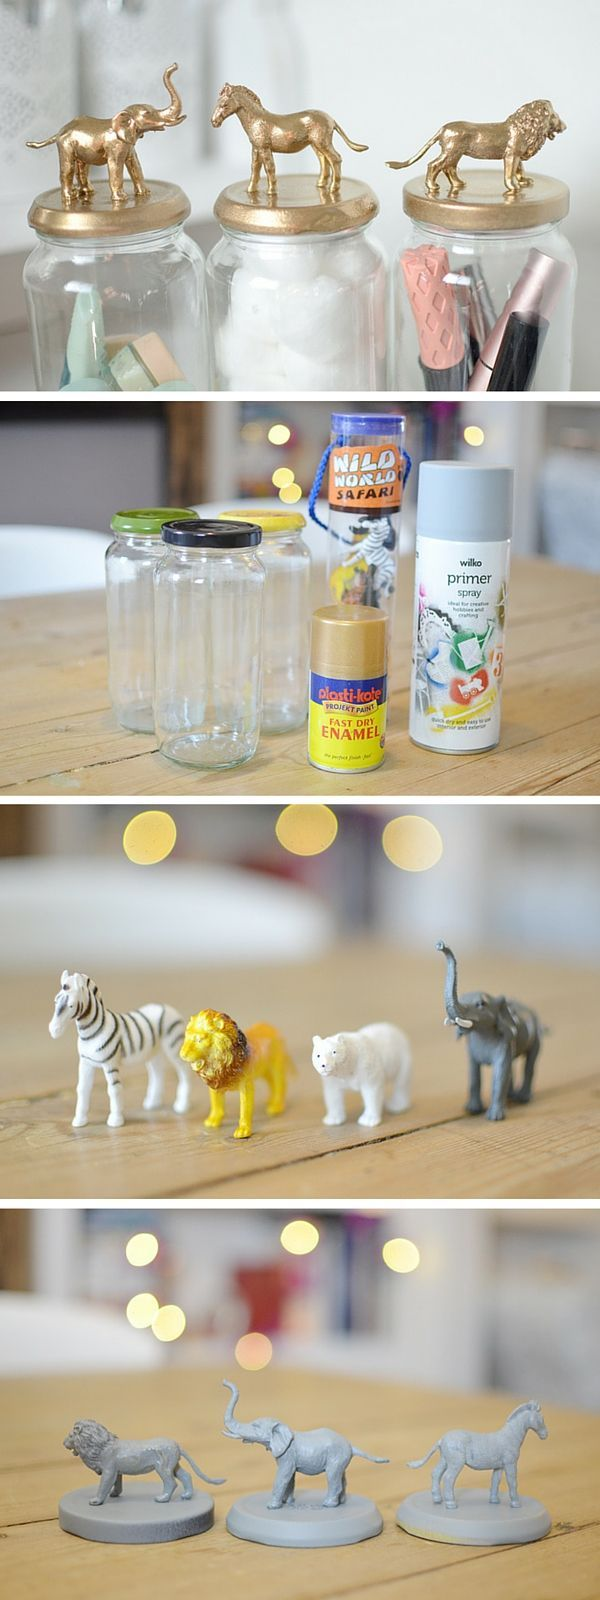 Best 25 Cool diy ideas on Pinterest Fun diy crafts DIY and